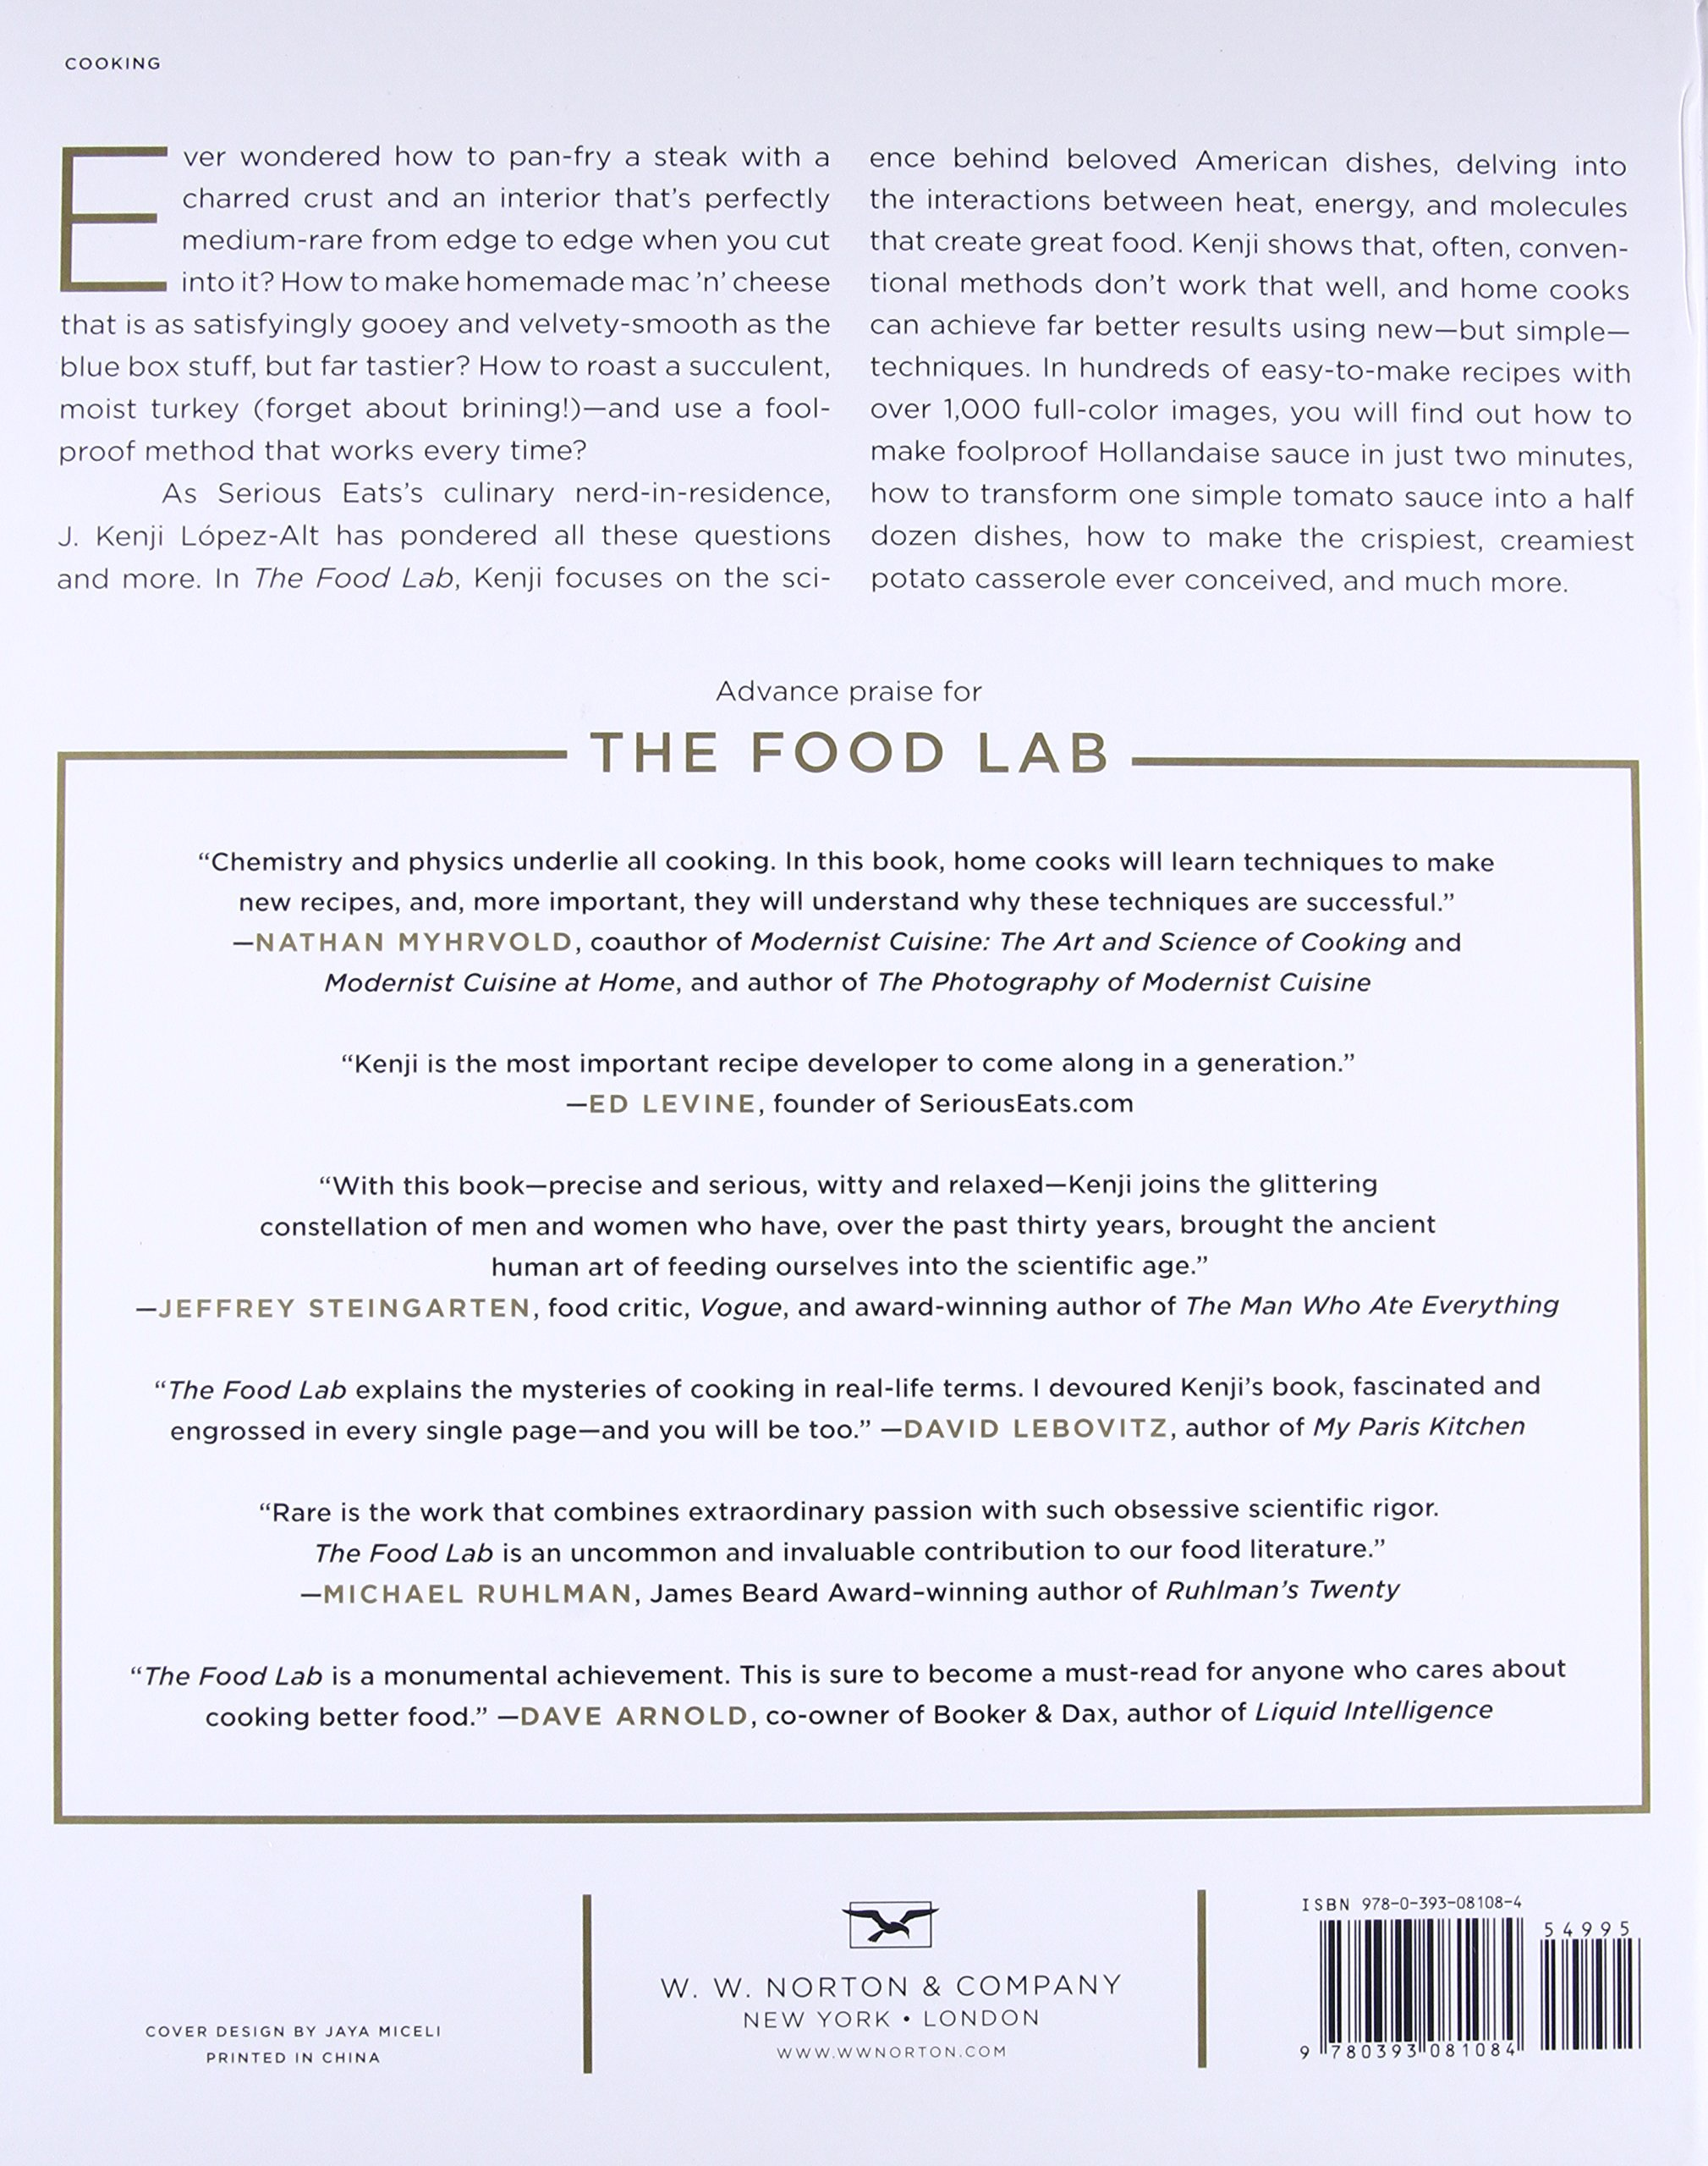 The food lab better home cooking through science j kenji lpez the food lab better home cooking through science j kenji lpez alt 9780393081084 amazon books forumfinder Choice Image